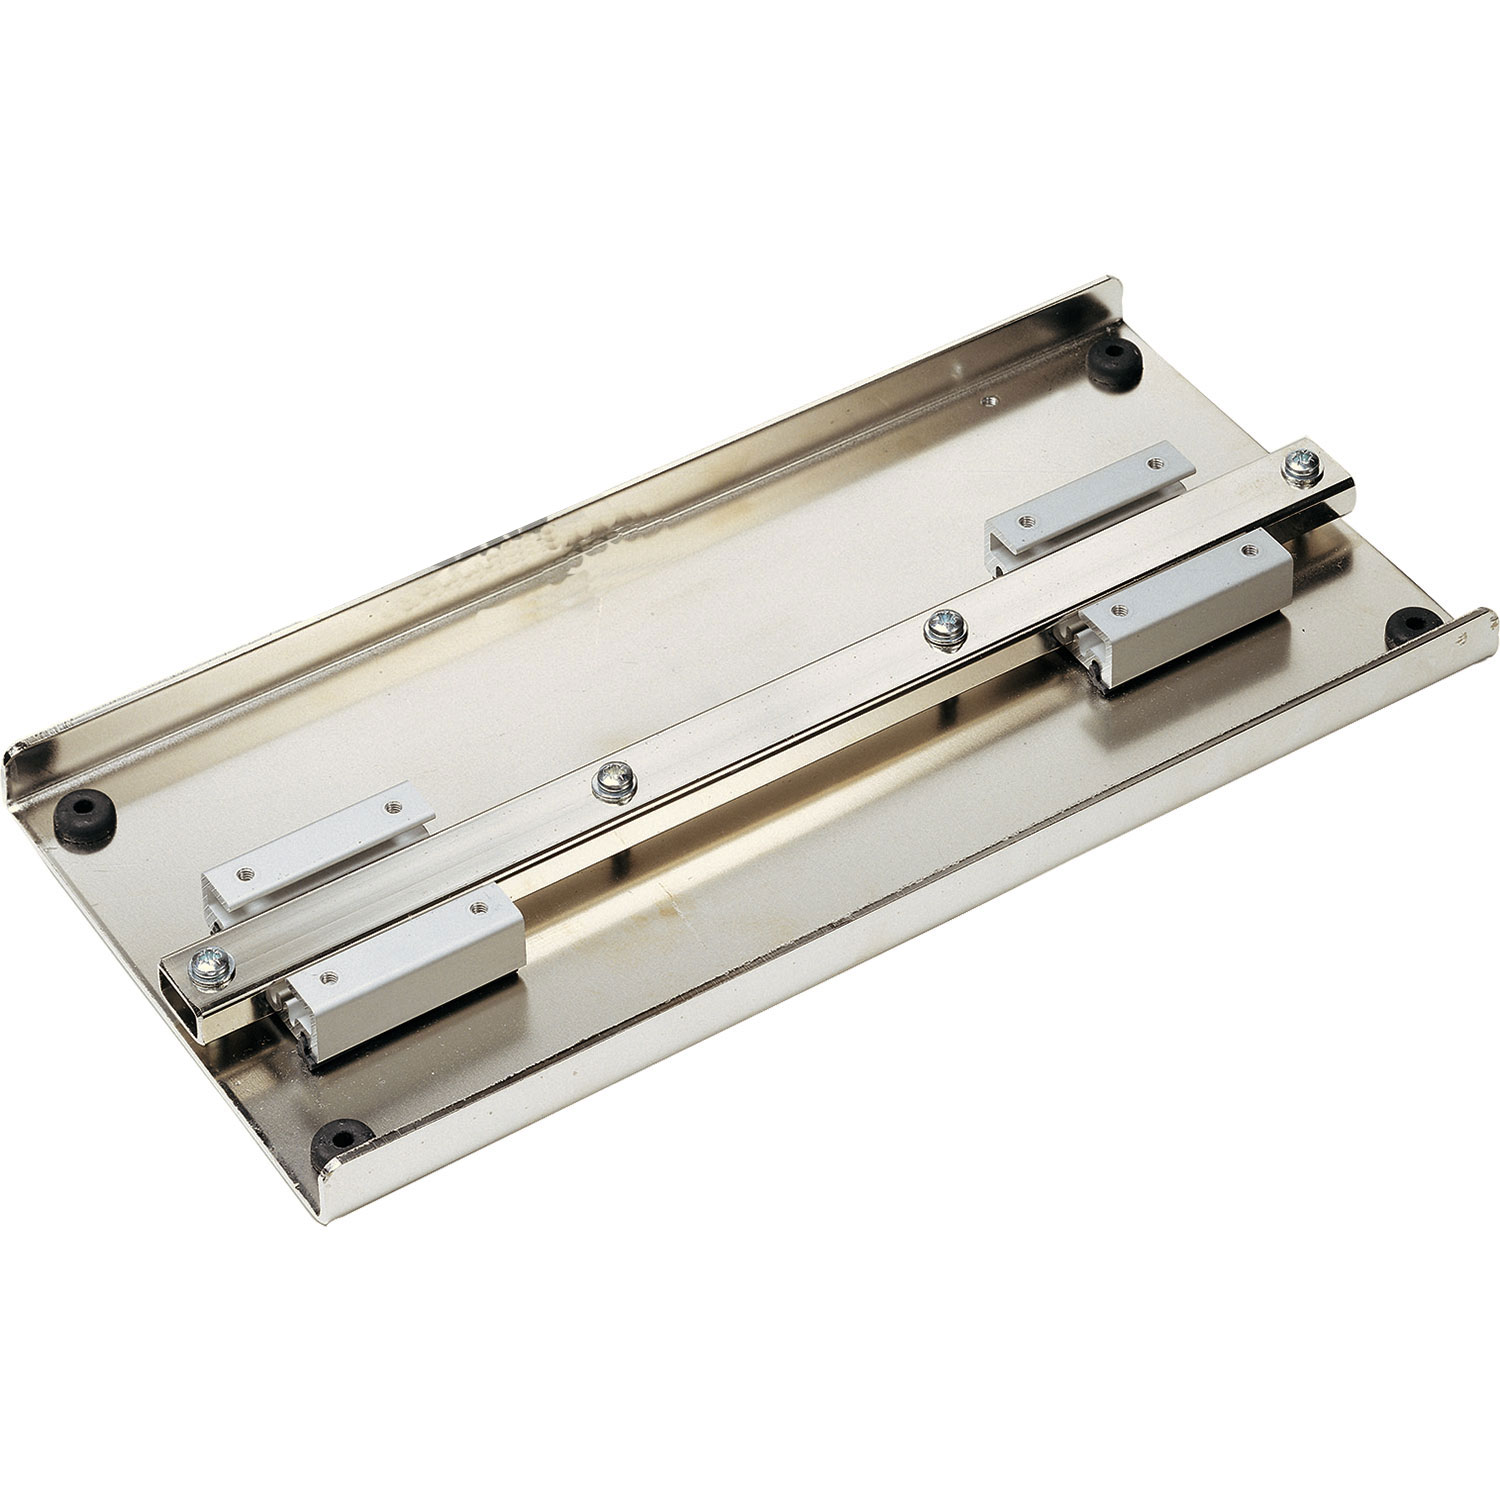 Rapid 105E Industrial Base Table | Electric Stapler Base